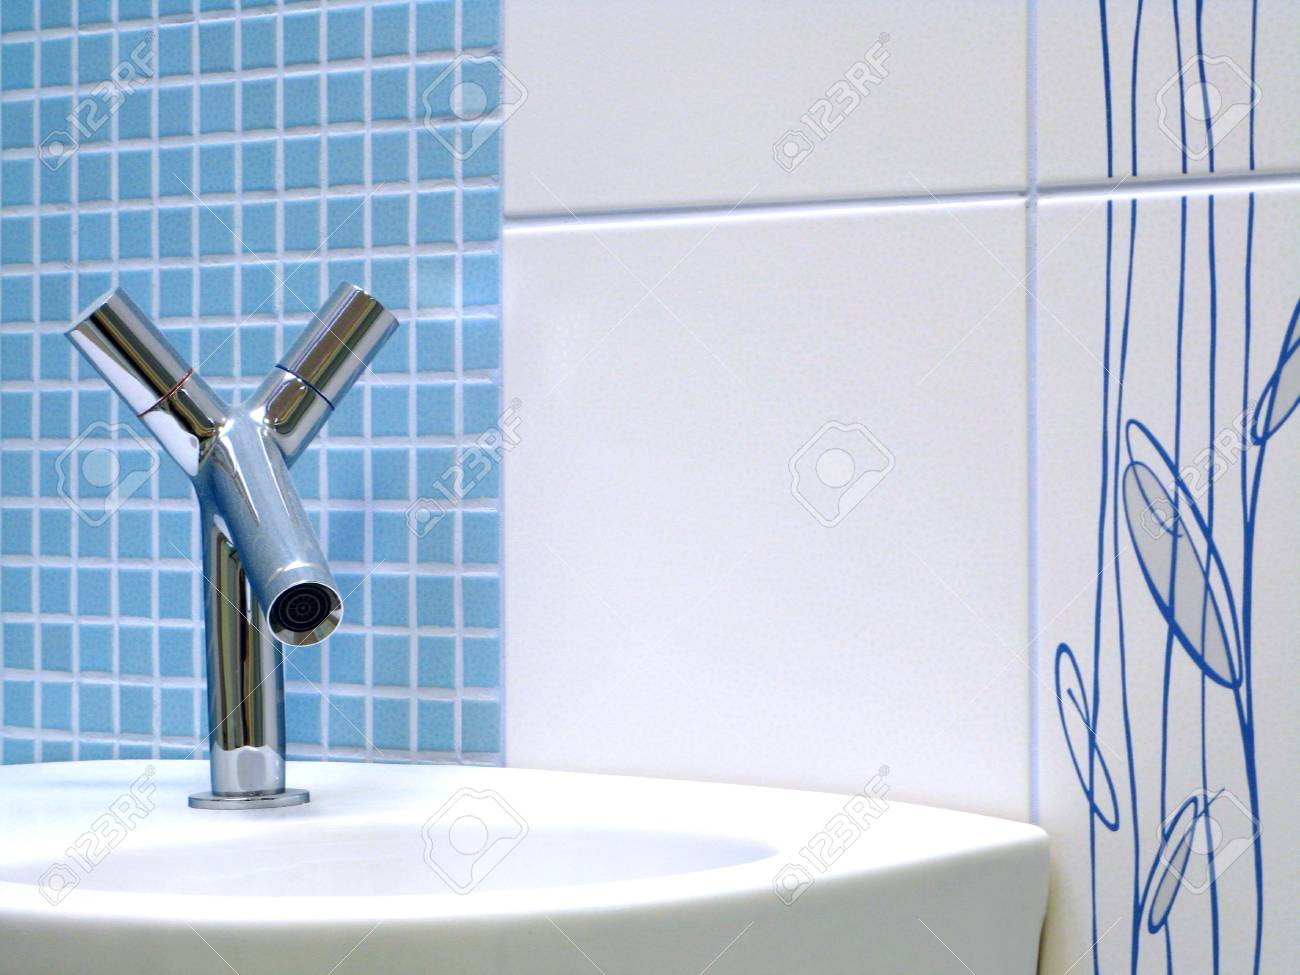 Interior of bathroom - basin and faucet Stock Photo - 4137650